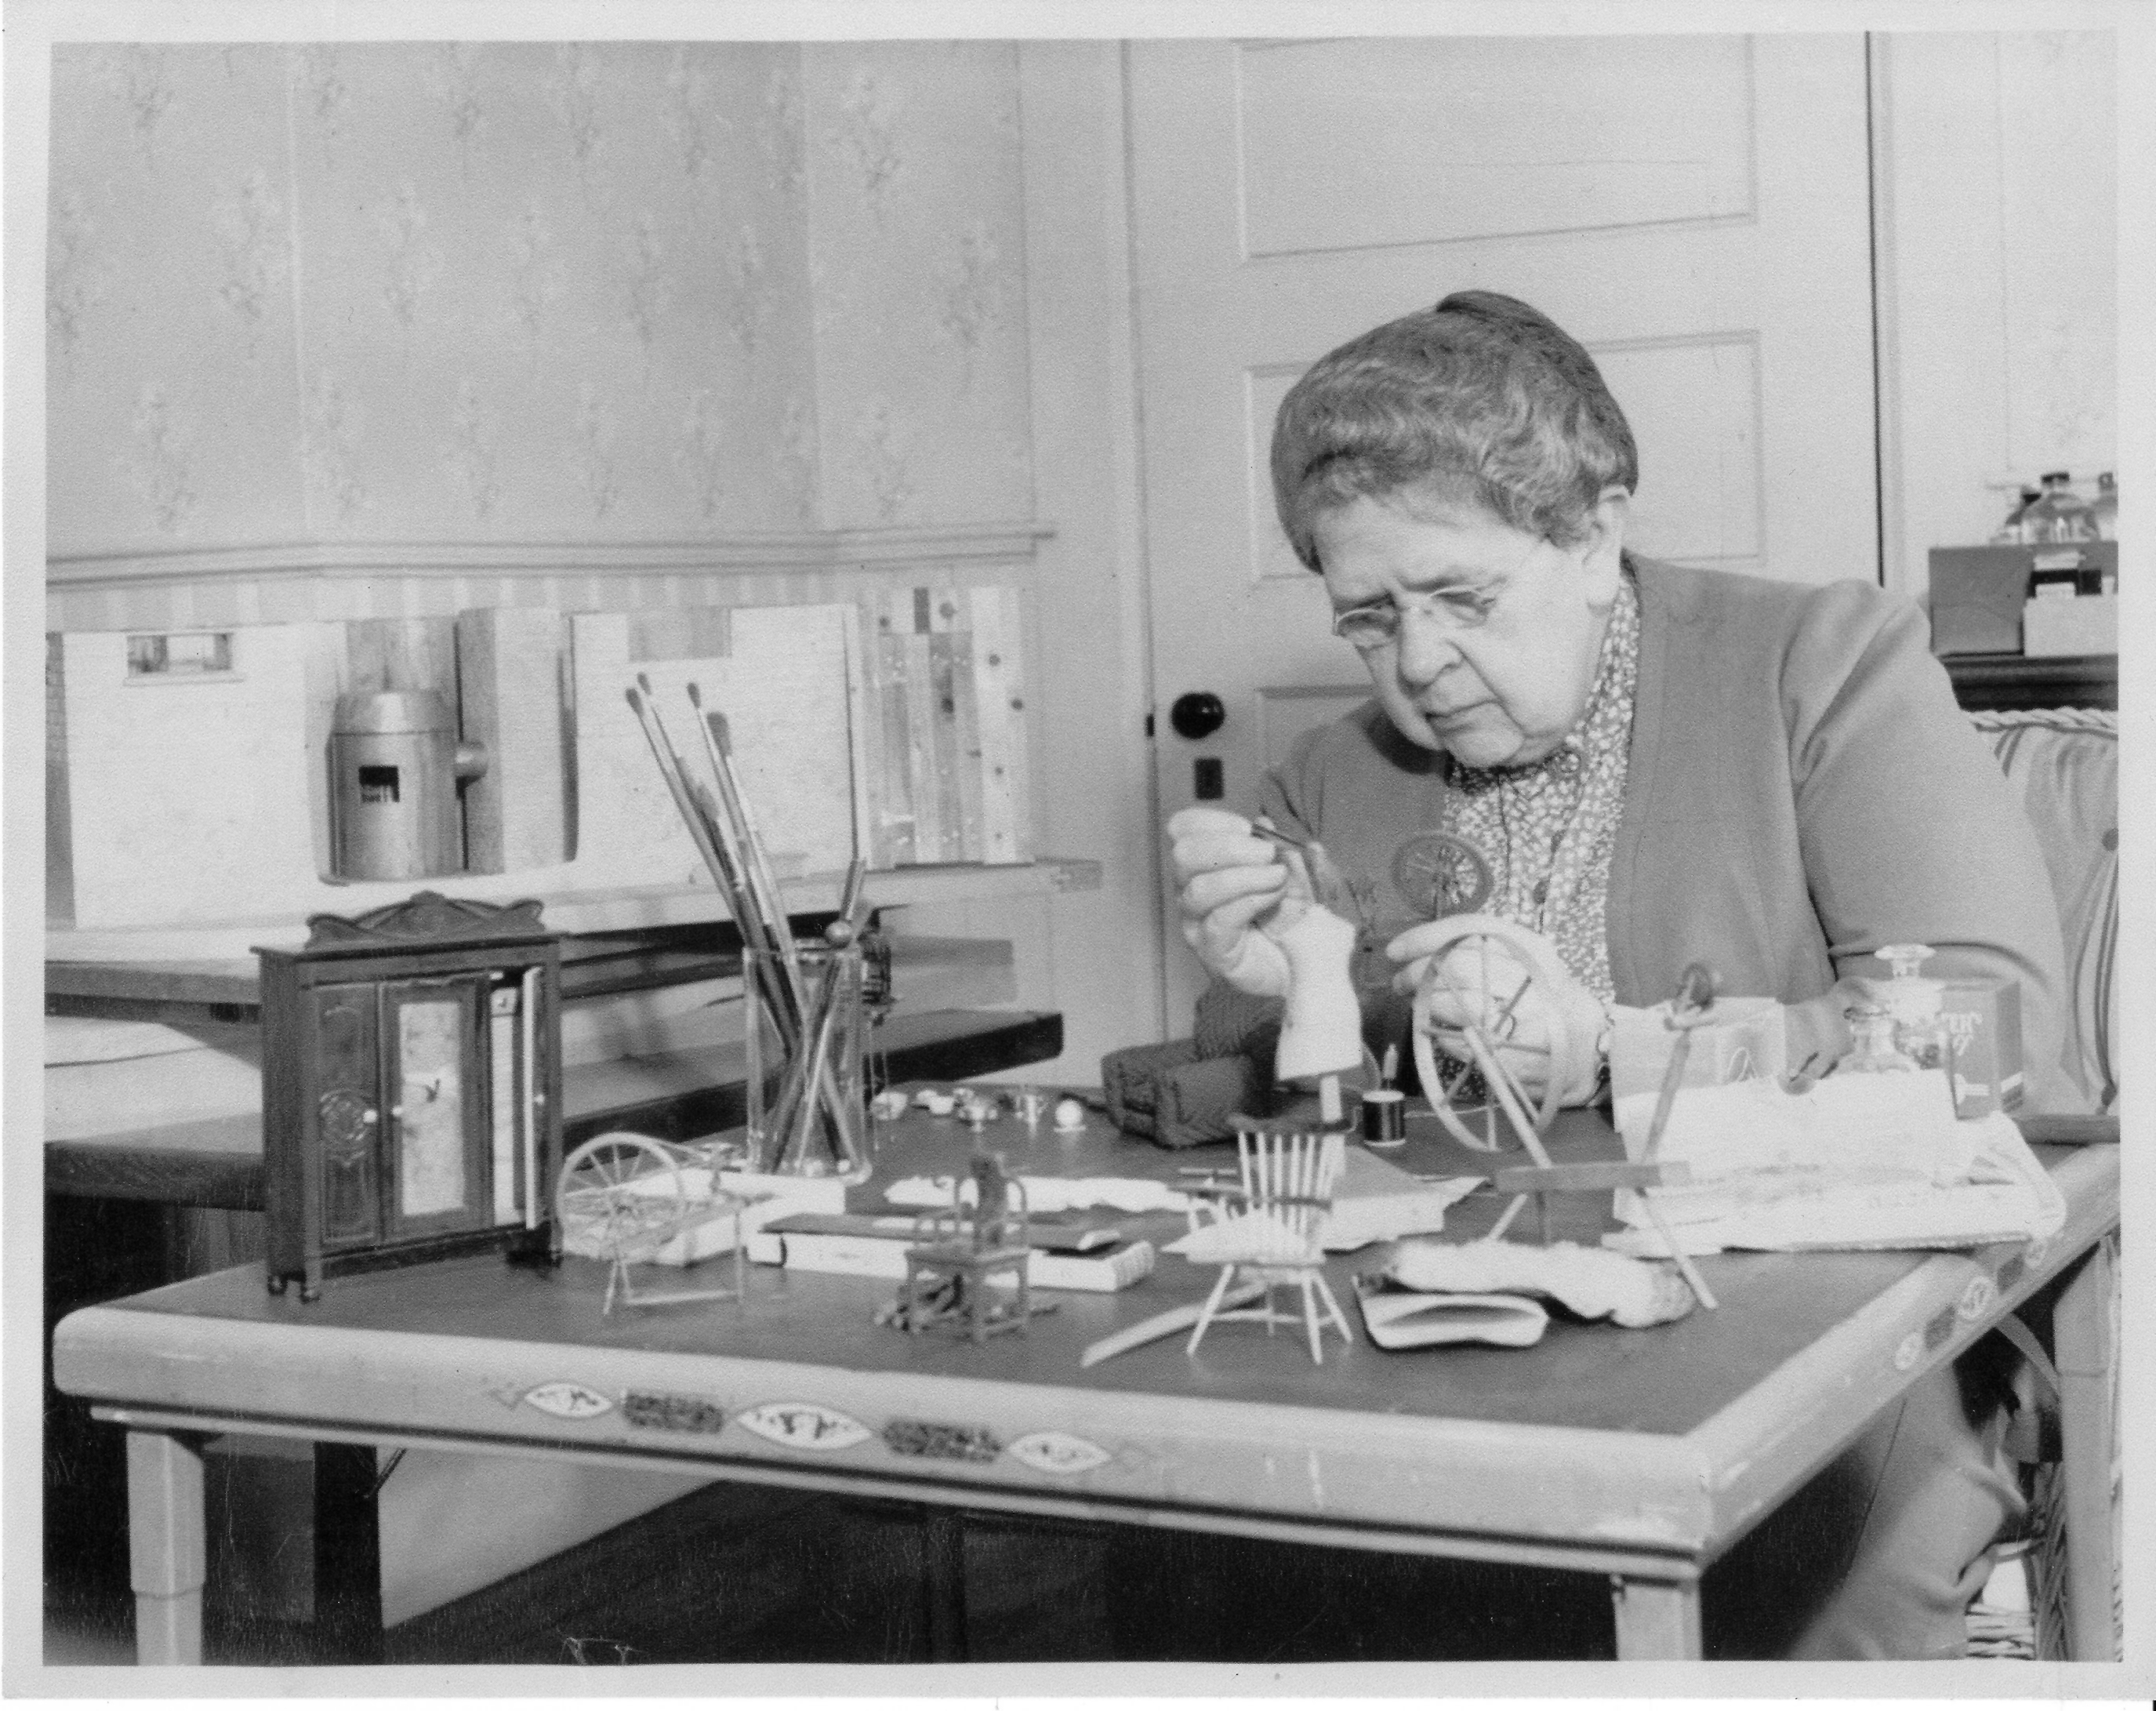 The Nutshell Studies of Unexplained Death, Dioramas, Frances Glessner Lee